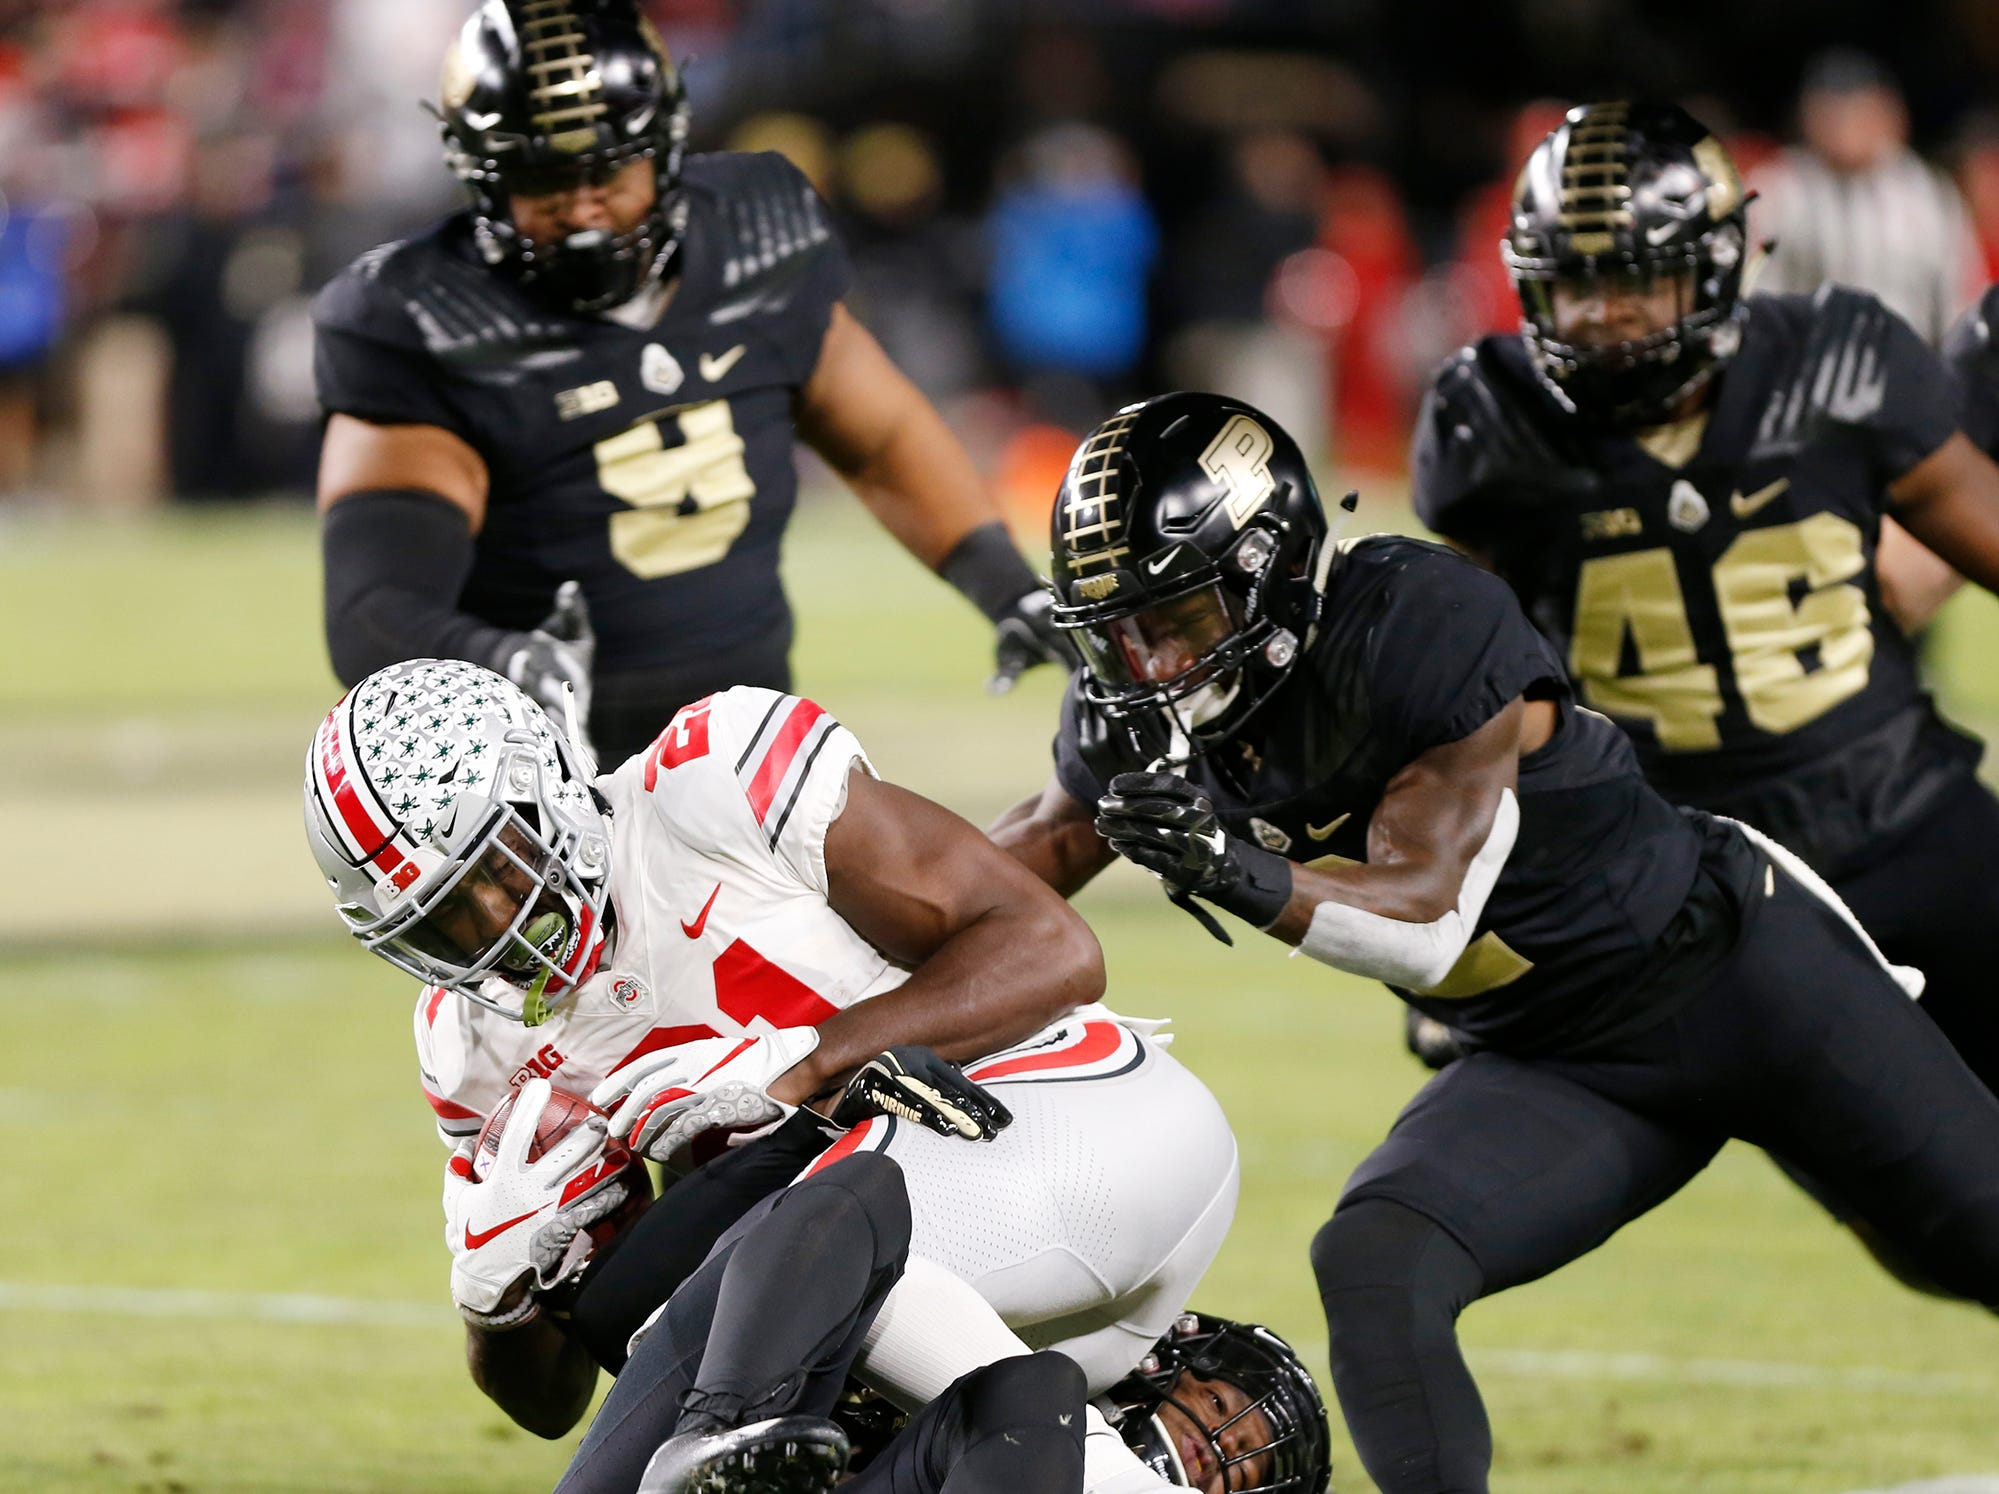 Parris Campbell Jr. of Ohio State is brought down by Simeon Smiley and the Purdue defense Saturday, October 20, 2018, at Ross-Ade Stadium. Purdue upset No. 2 ranked Ohio State 49-20.